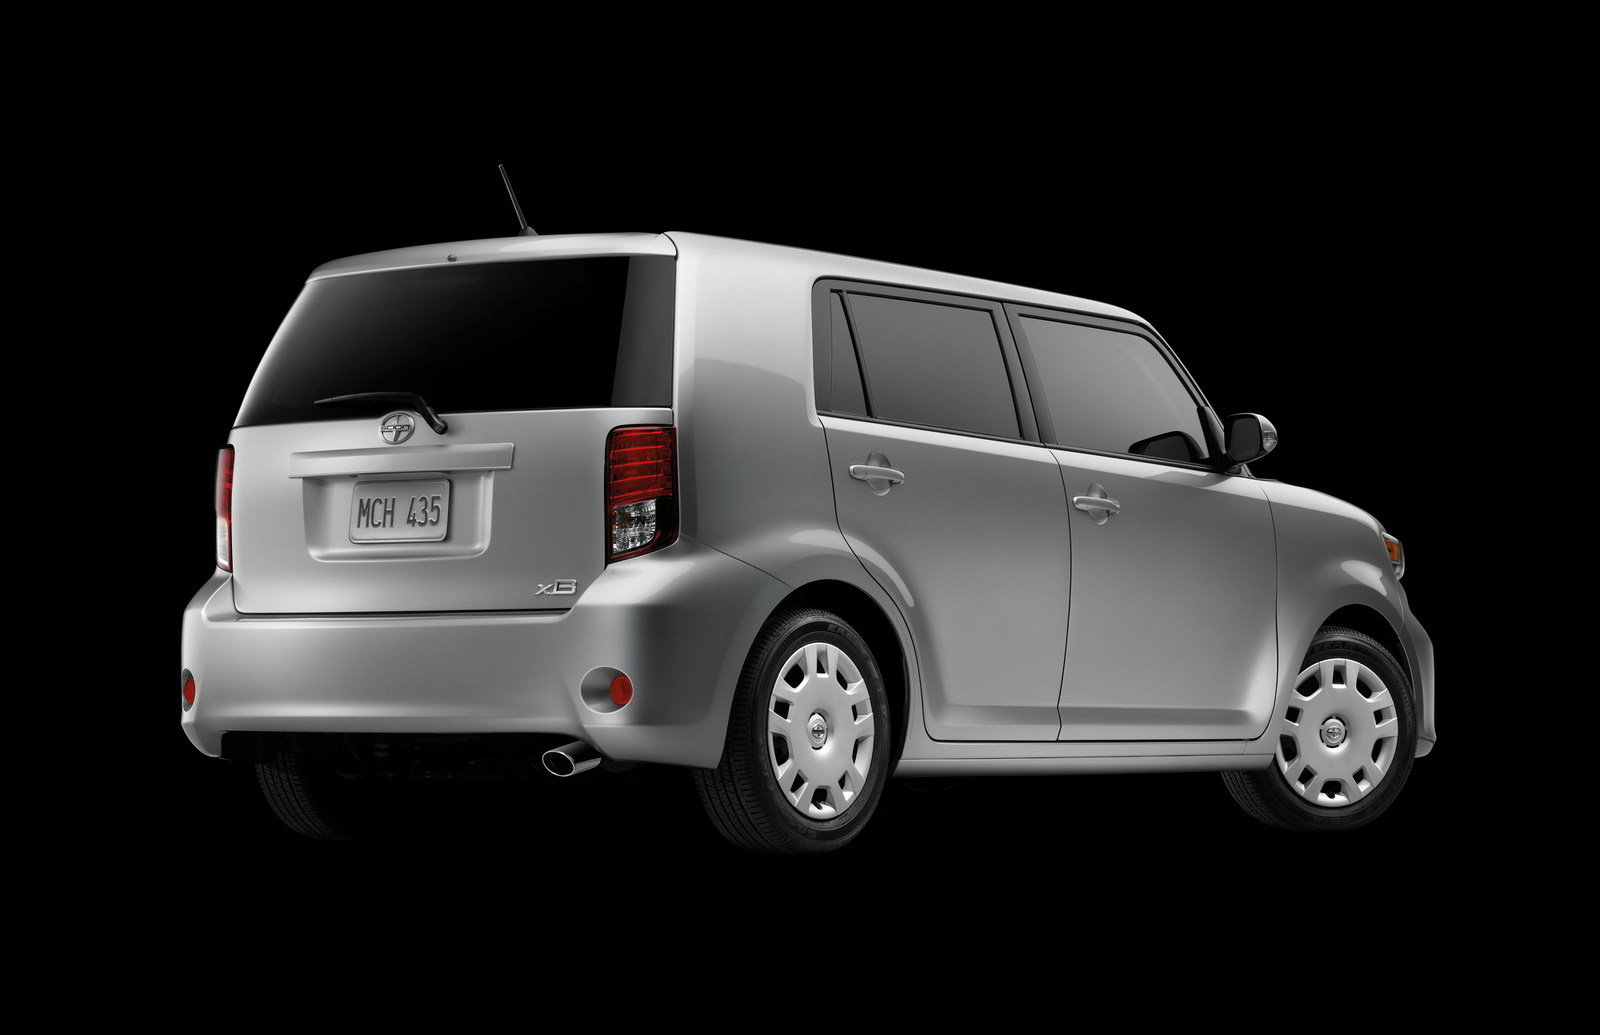 2011 scion xb picture 353690 car review top speed. Black Bedroom Furniture Sets. Home Design Ideas